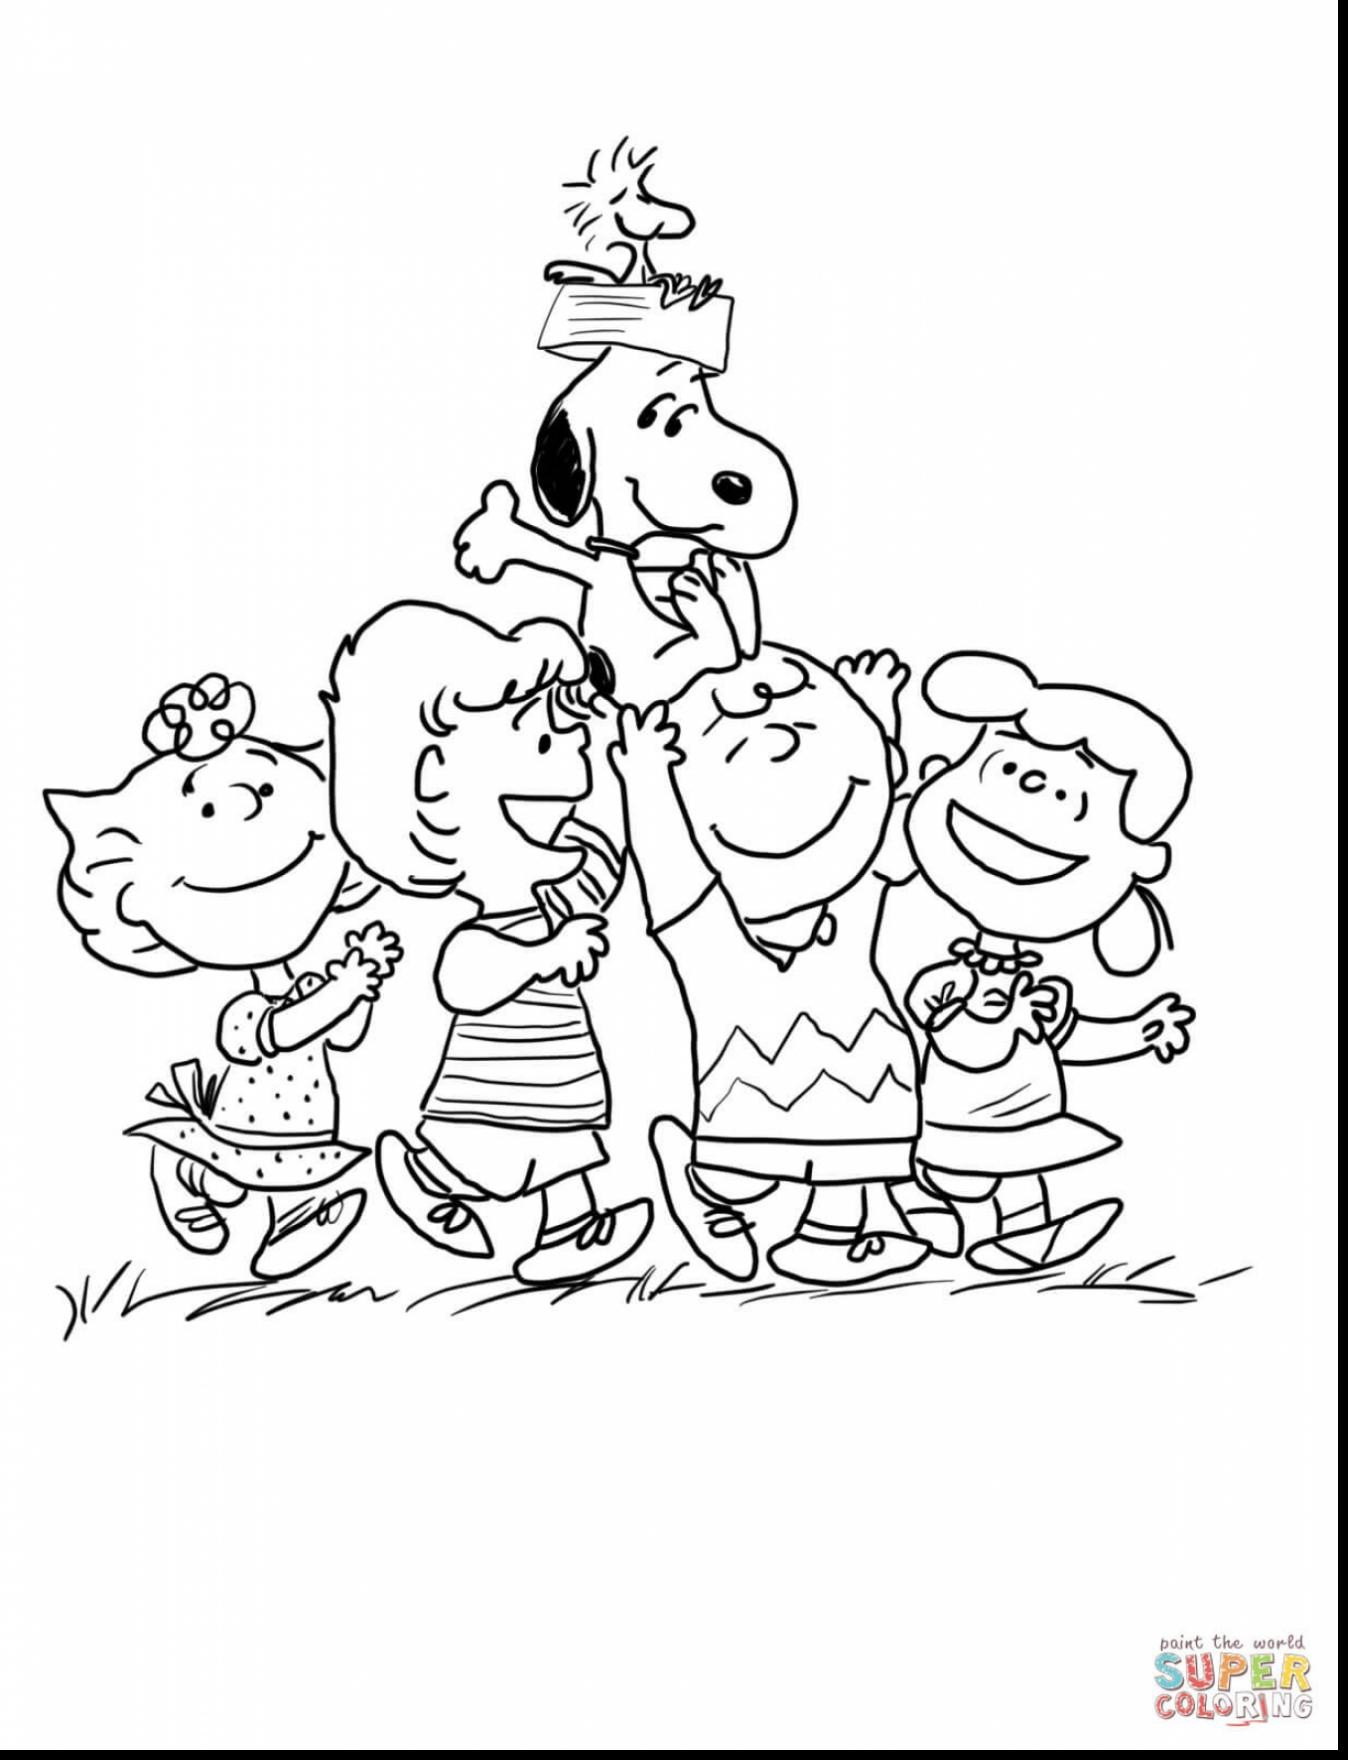 charlie brown coloring page coloring pages charlie brown christmas coloring pages and brown page coloring charlie